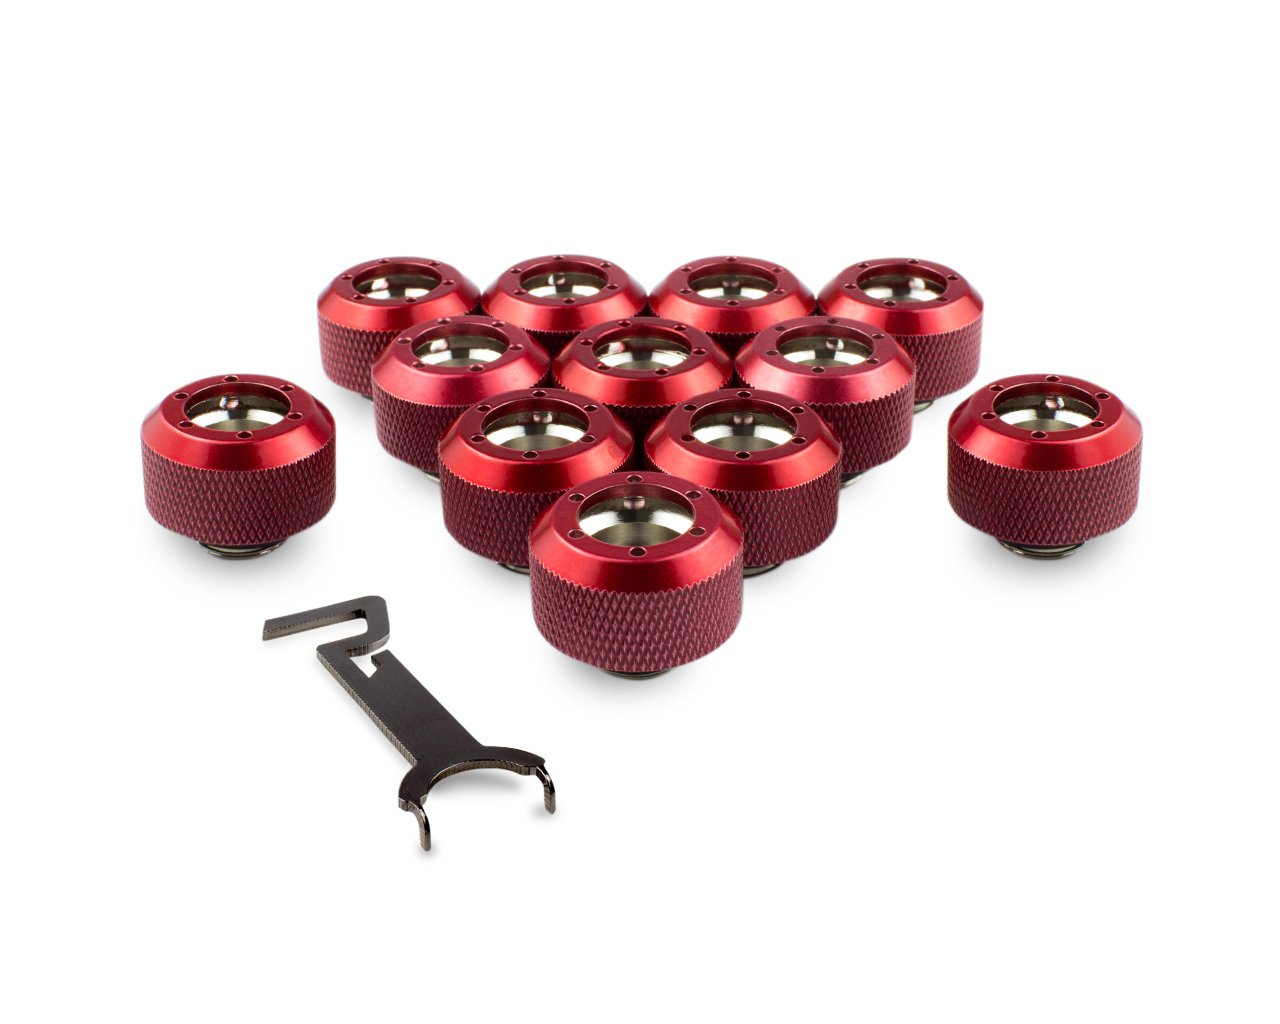 PrimoChill 1/2in. Rigid RevolverSX Series Fitting - Candy Red - 12 Pack